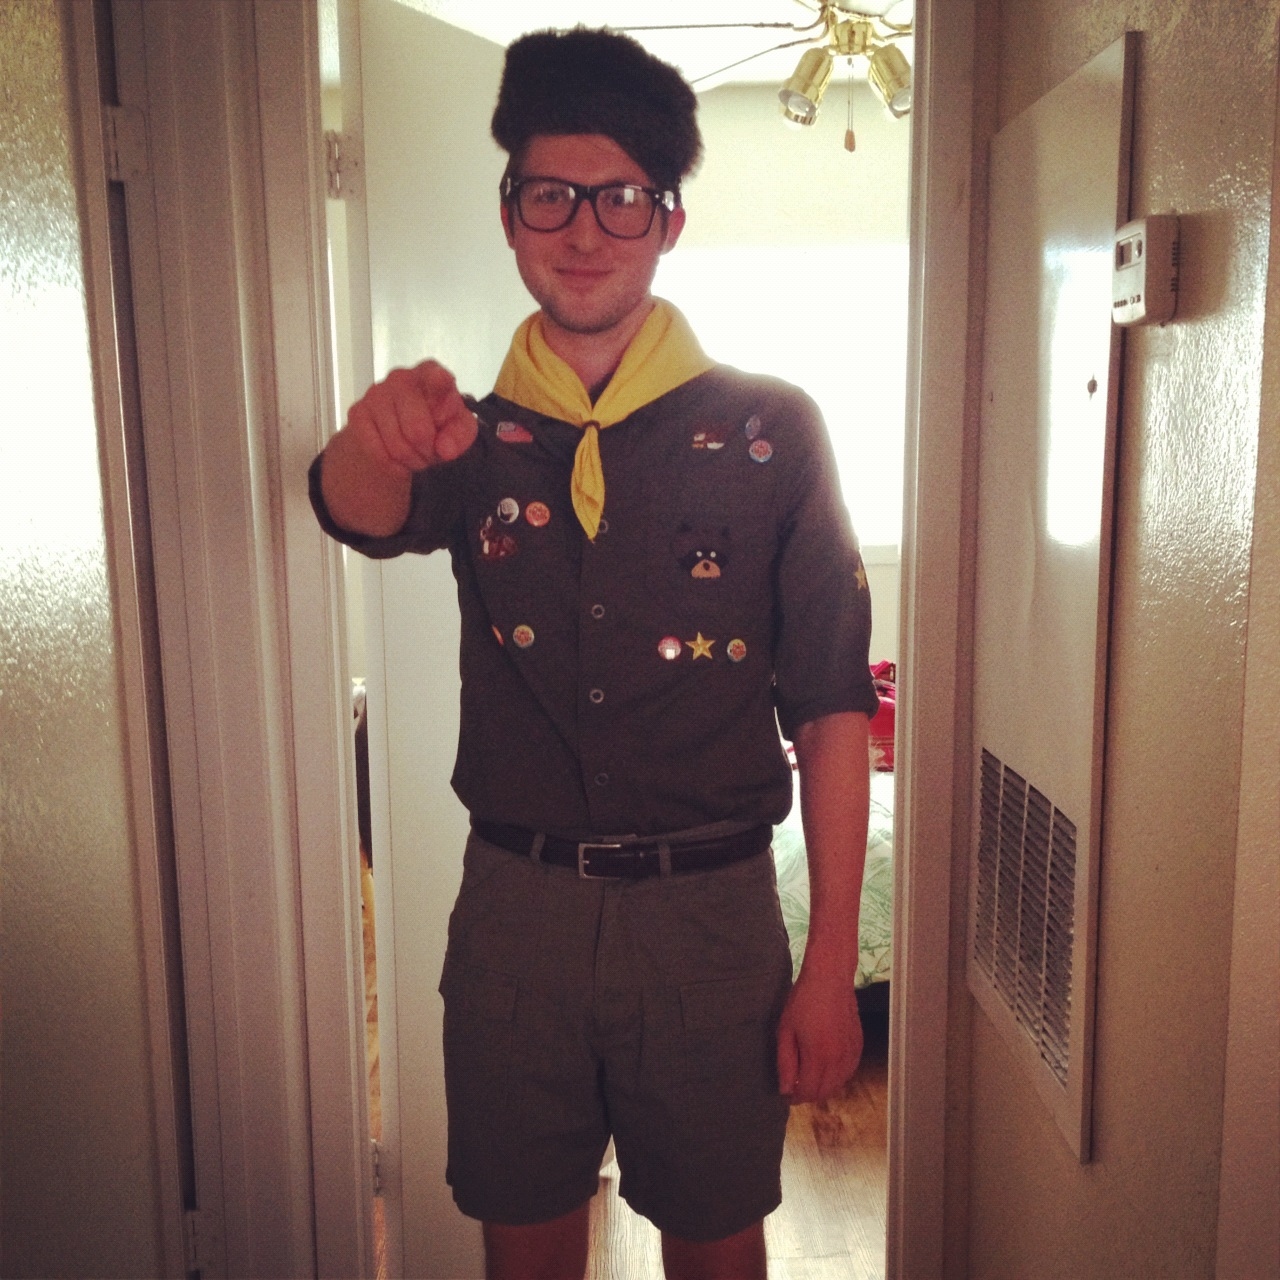 Moonrise Kingdom Costume Sam Shakusky  sc 1 st  Records u0026 Grammar & Records u0026 Grammar: Moonrise Kingdom Costume: Sam Shakusky